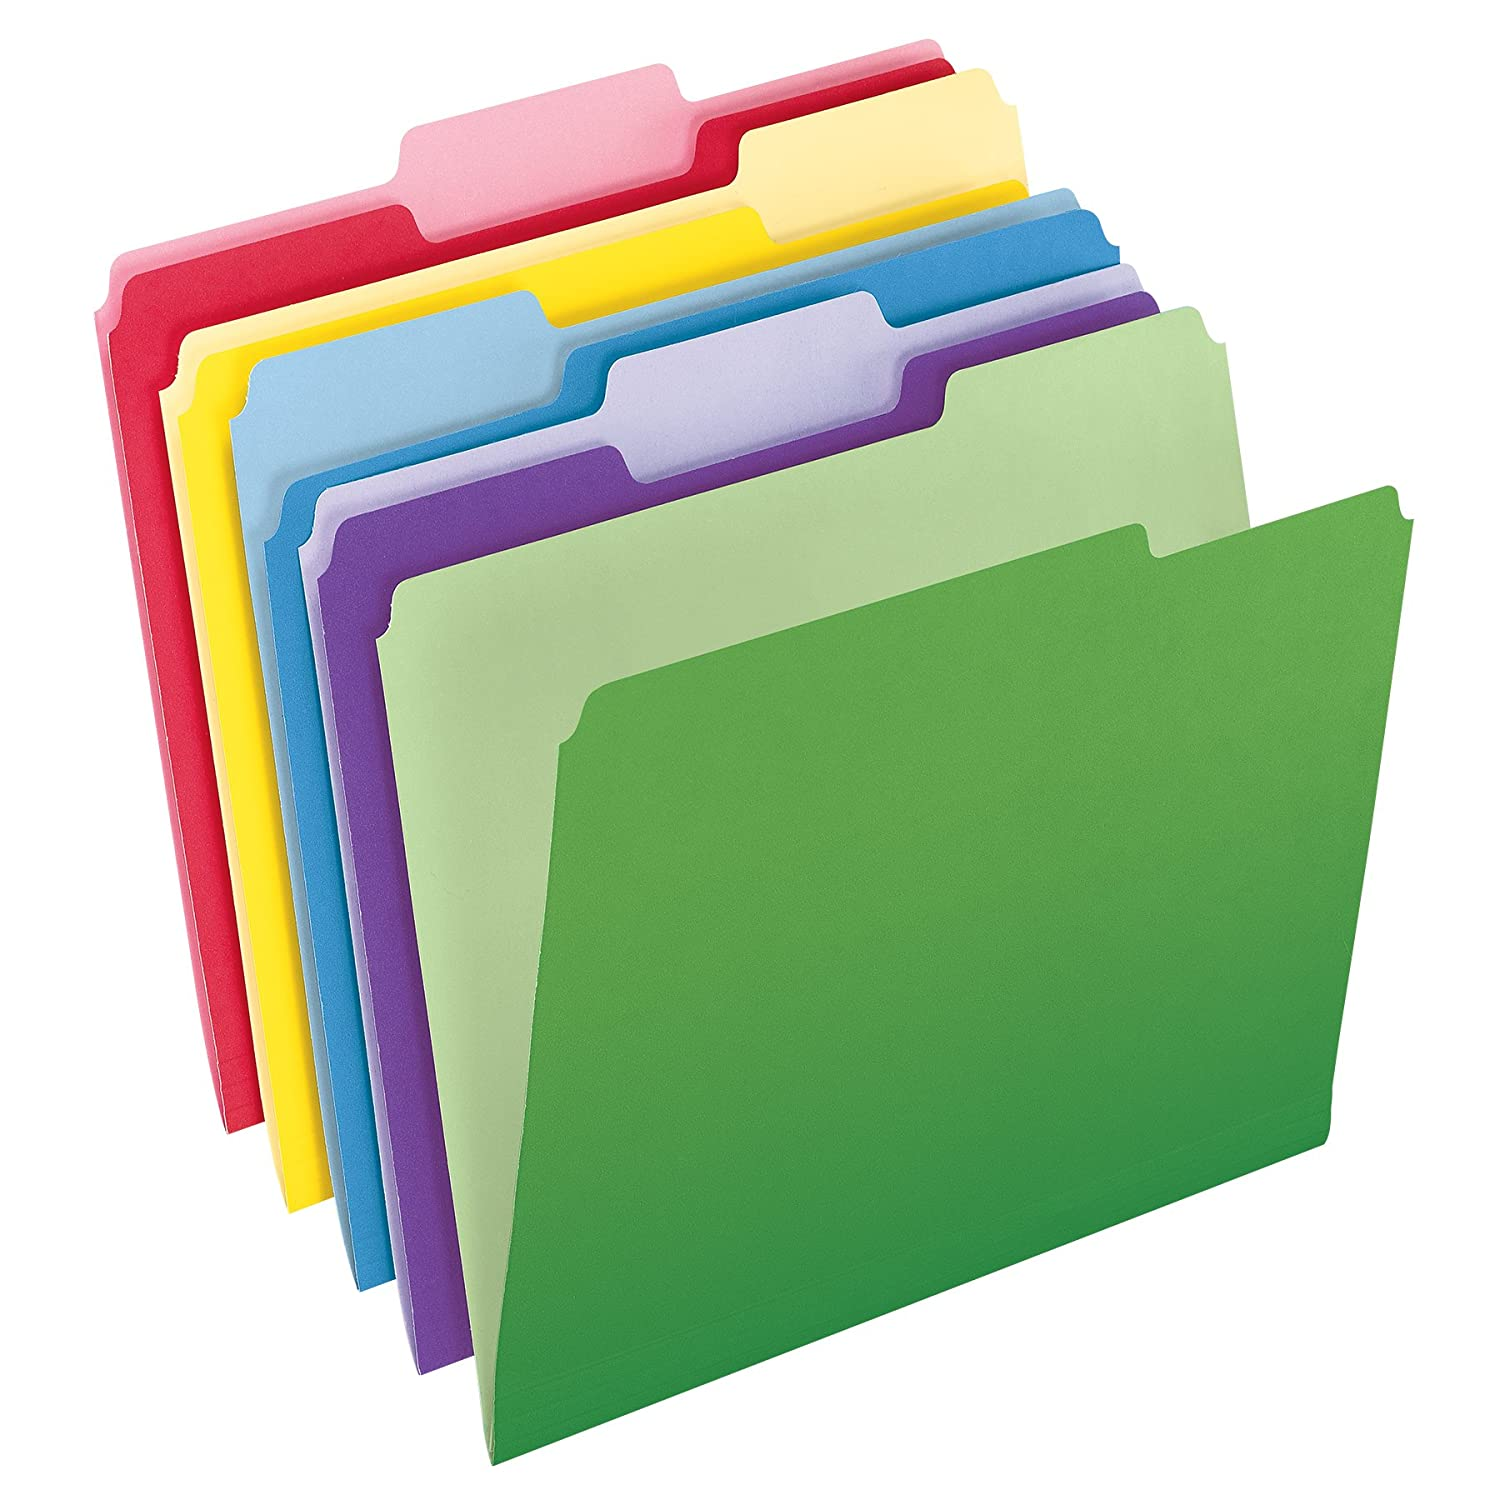 Pendaflex File Folders with InfoPocket, Letter Size, 1/3 Cut, Assorted Colors, 30 Folders per Pack (2086) Esselte Corporation